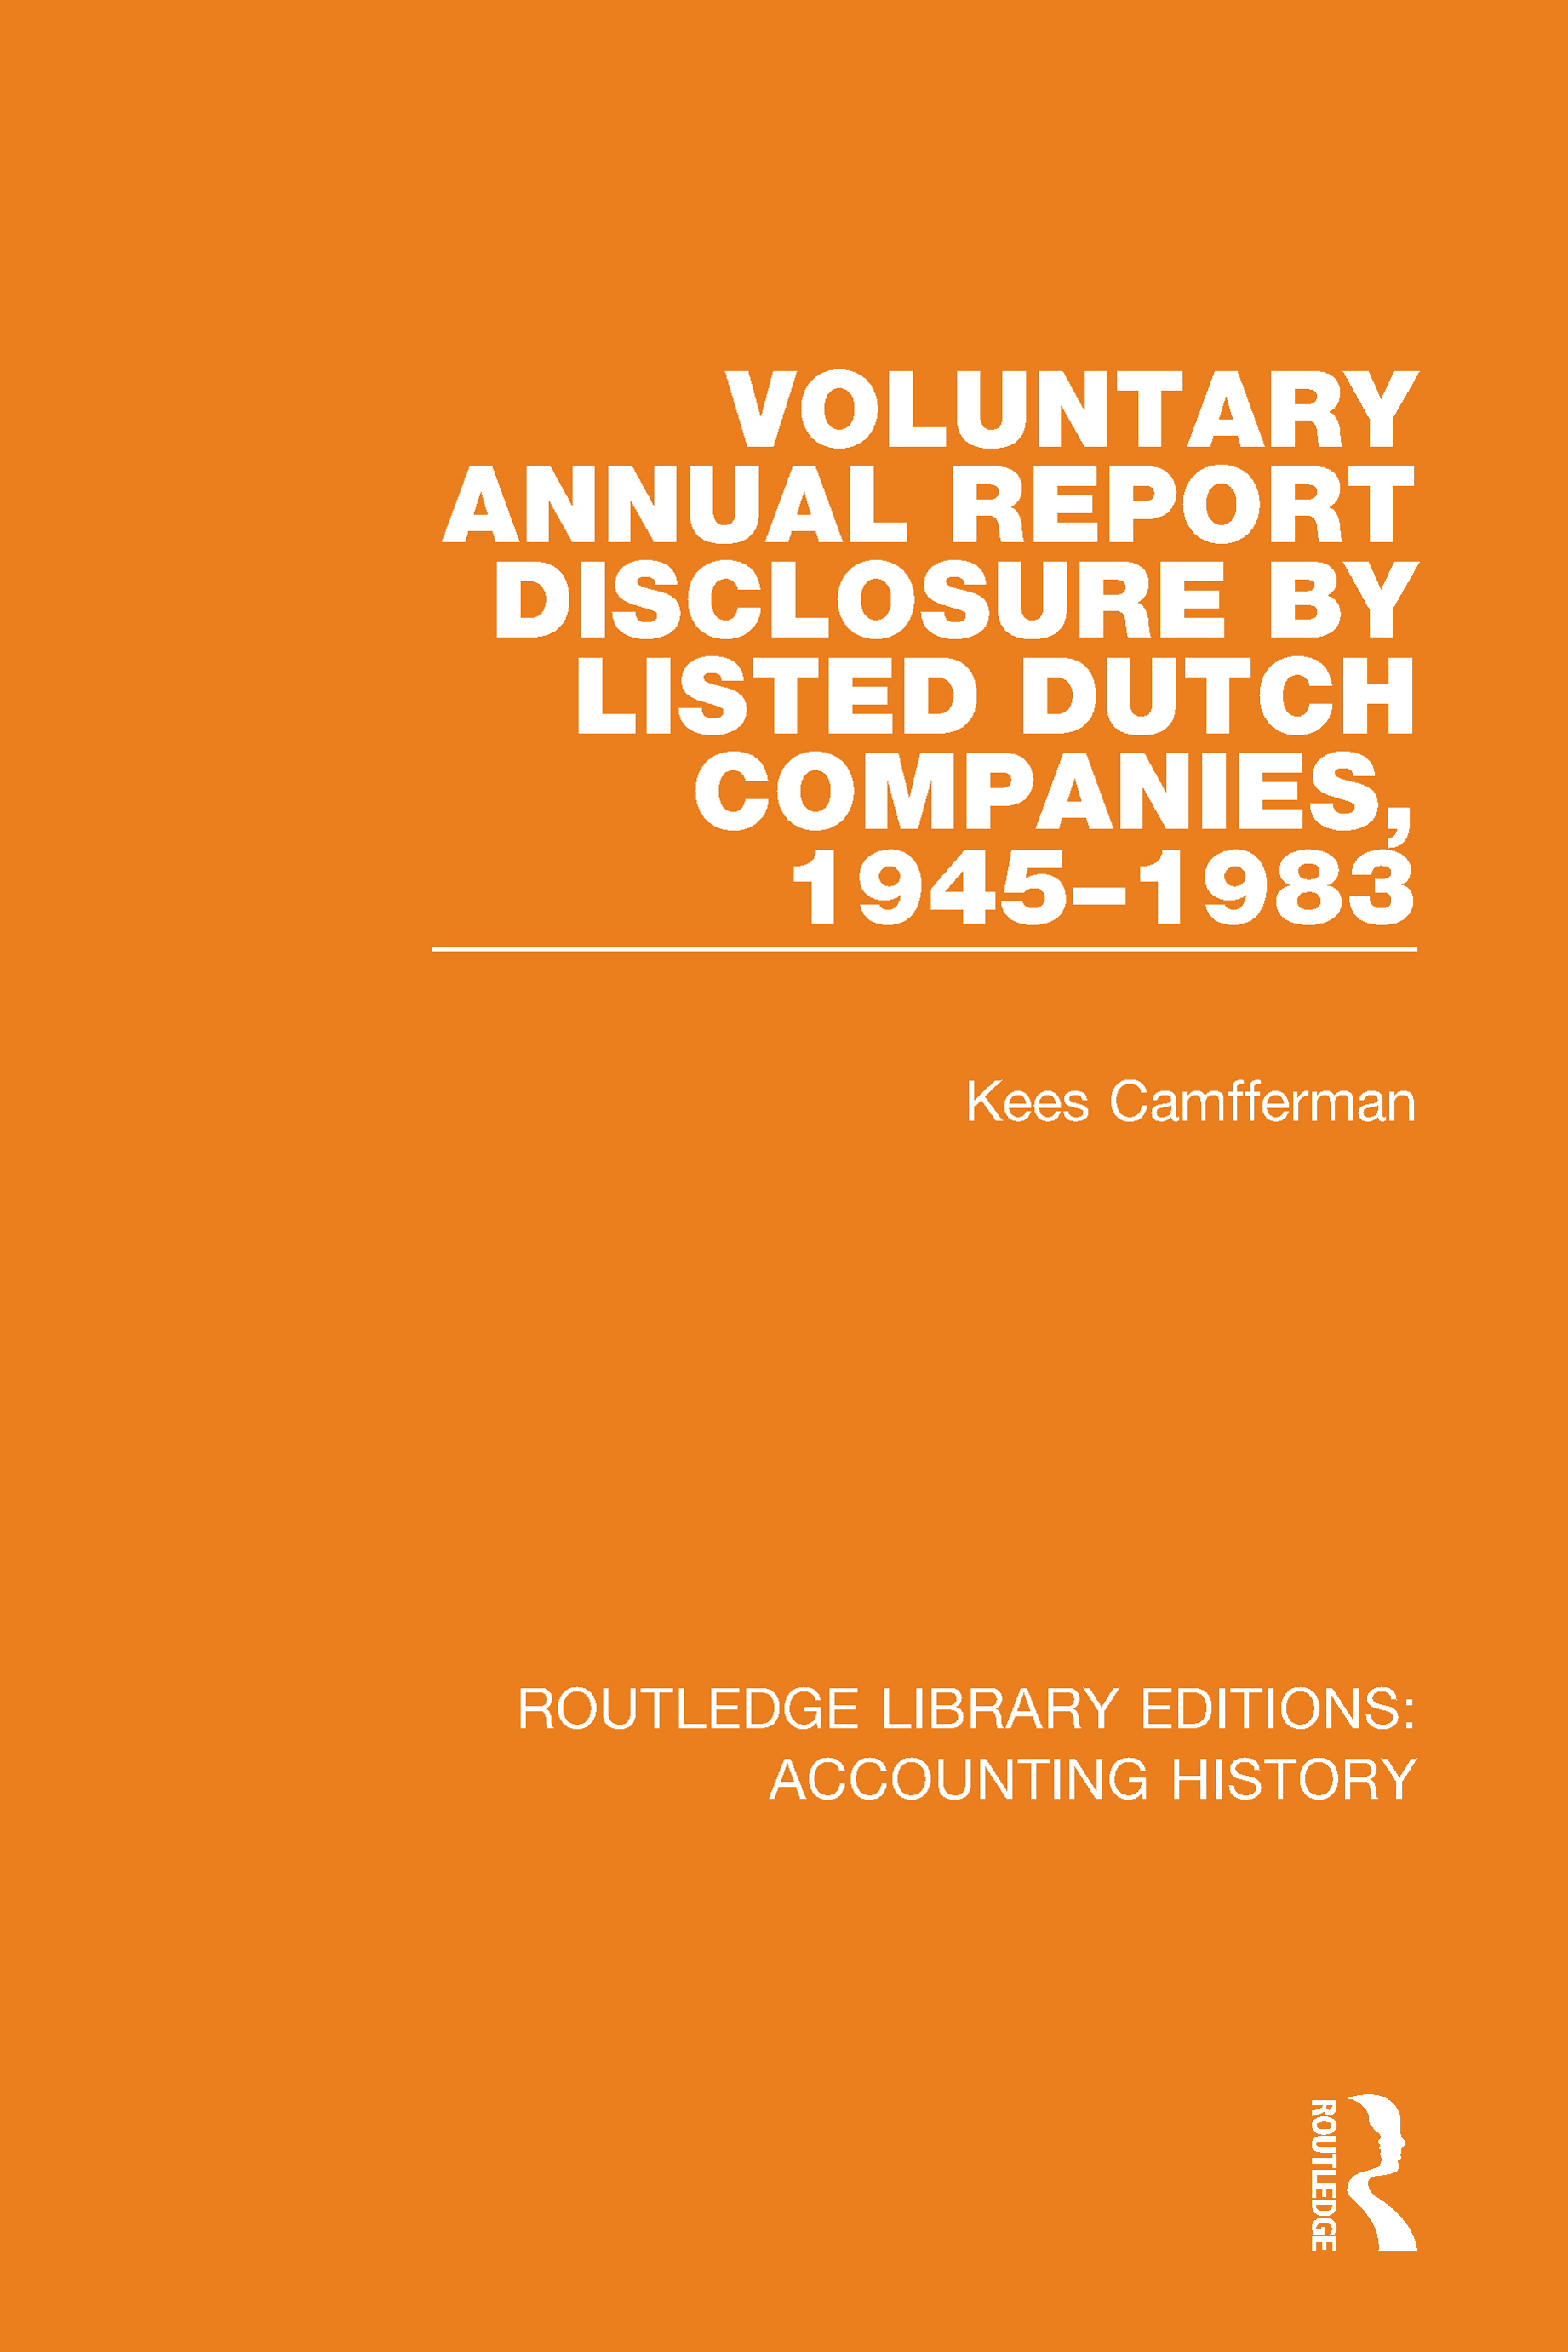 Voluntary Annual Report Disclosure by Listed Dutch Companies, 1945-1983